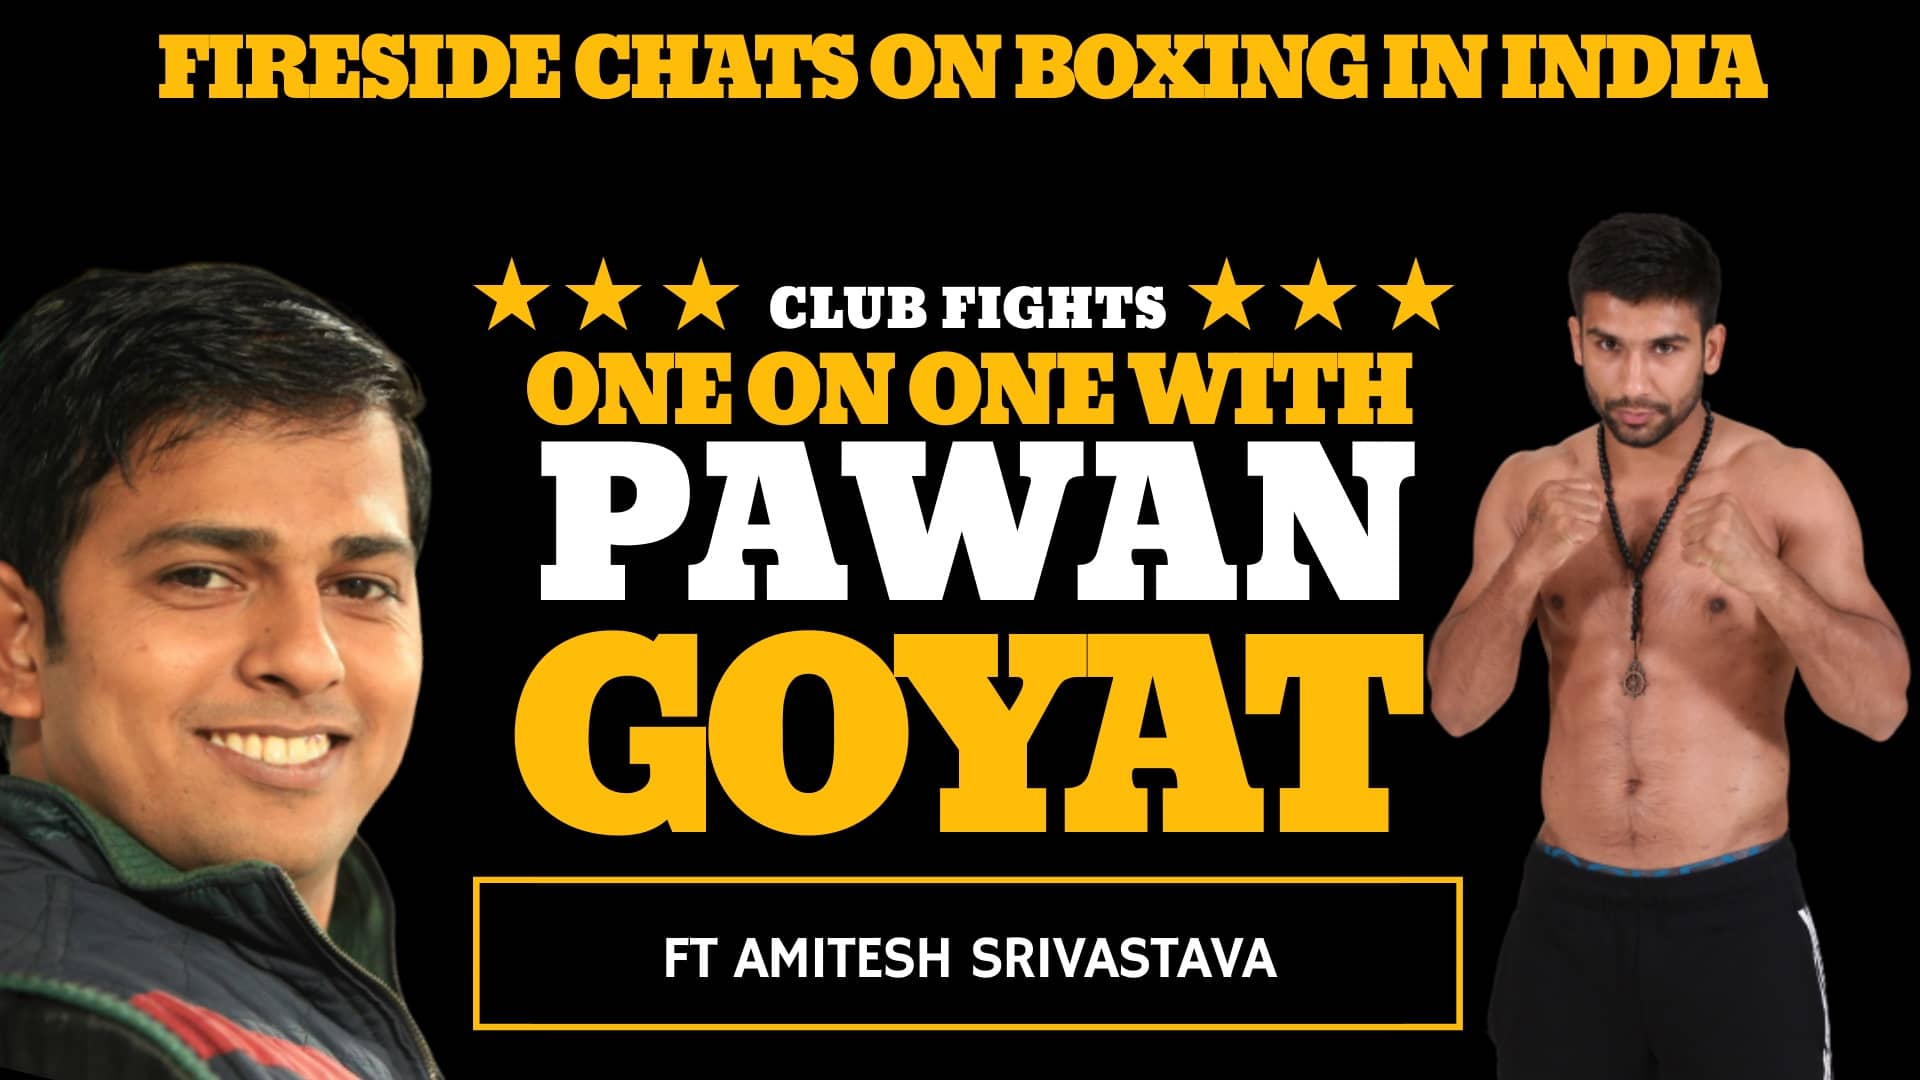 Pawan-Goyat-Fireside-Chats-on-Boxing-in-India